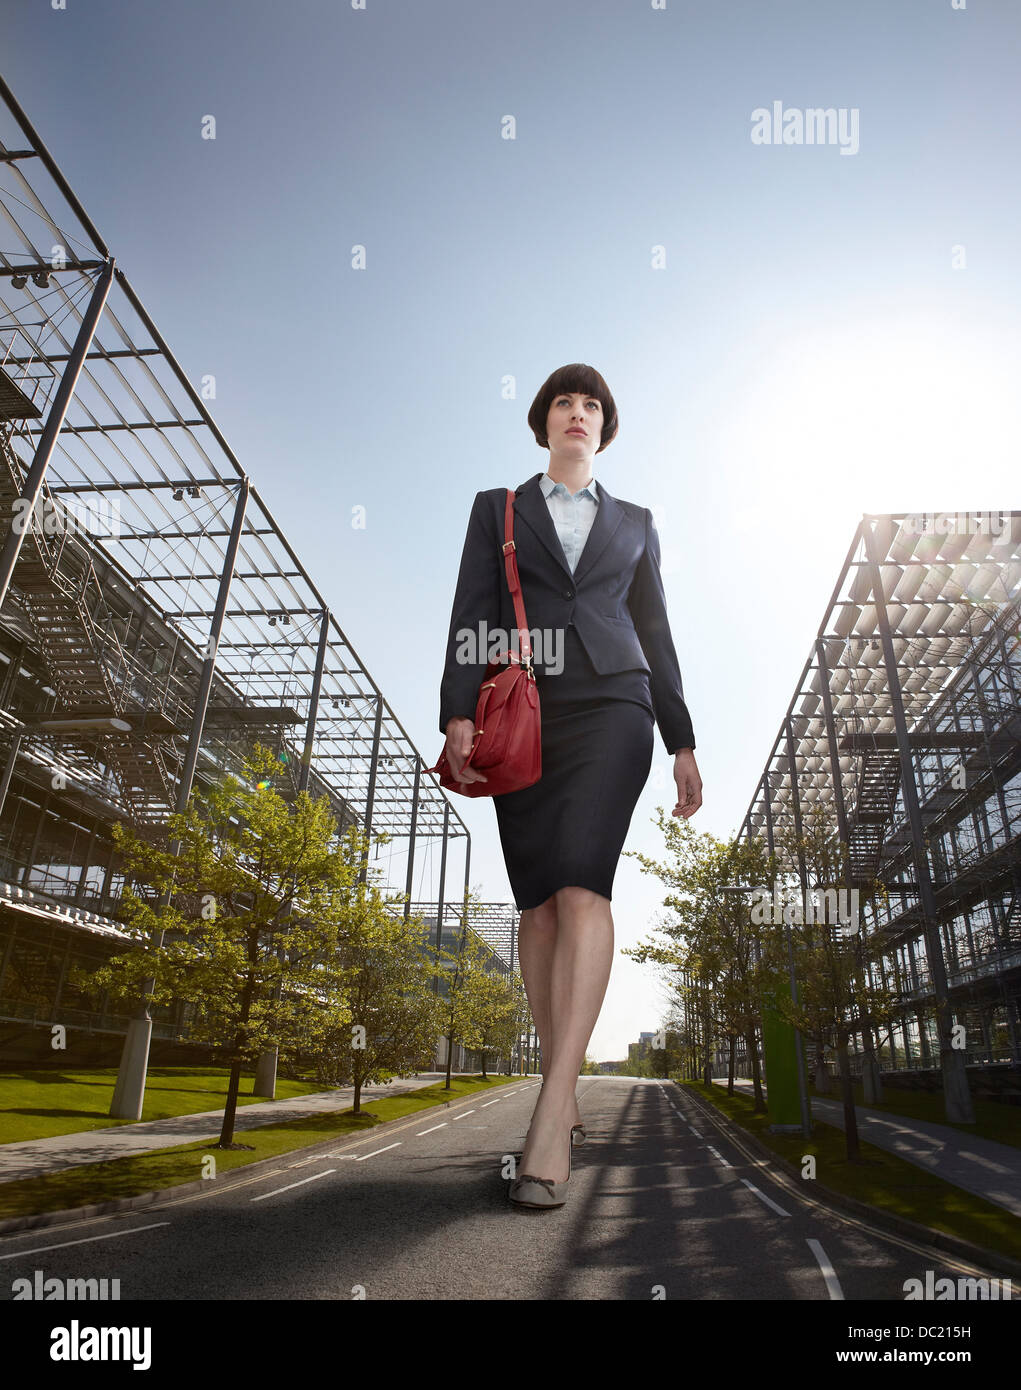 Oversized businesswoman walking on road, low angle view - Stock Image